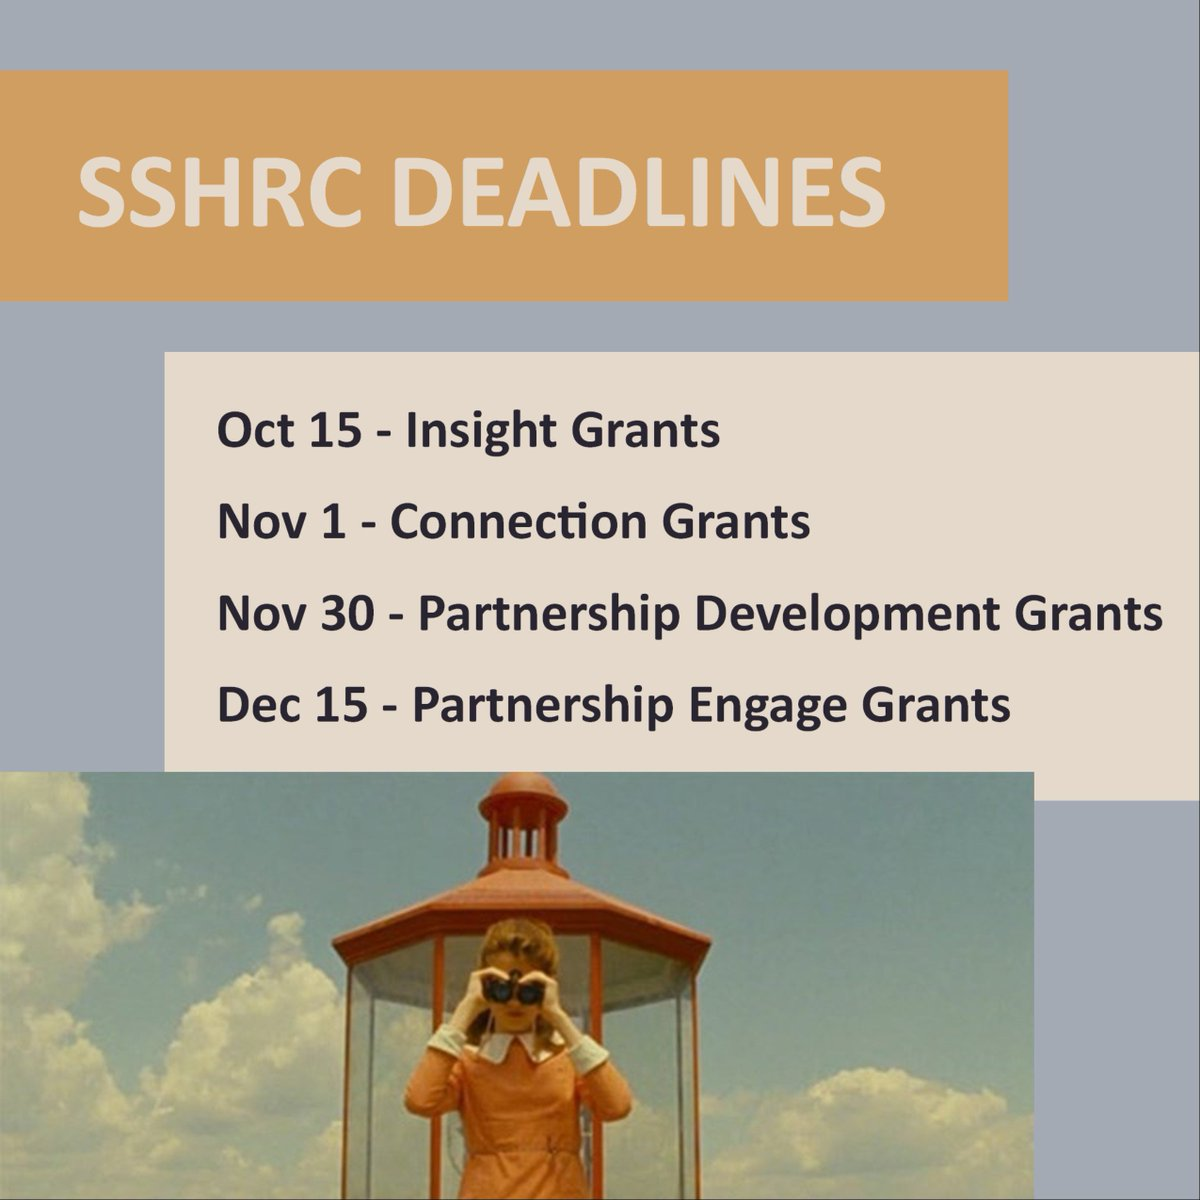 Look out! Upcoming SSHRC deadlines on the horizon. Need more info? Contact @acadiaresearch #AcadiaUResearch <br>http://pic.twitter.com/JHTfaKx1Fe